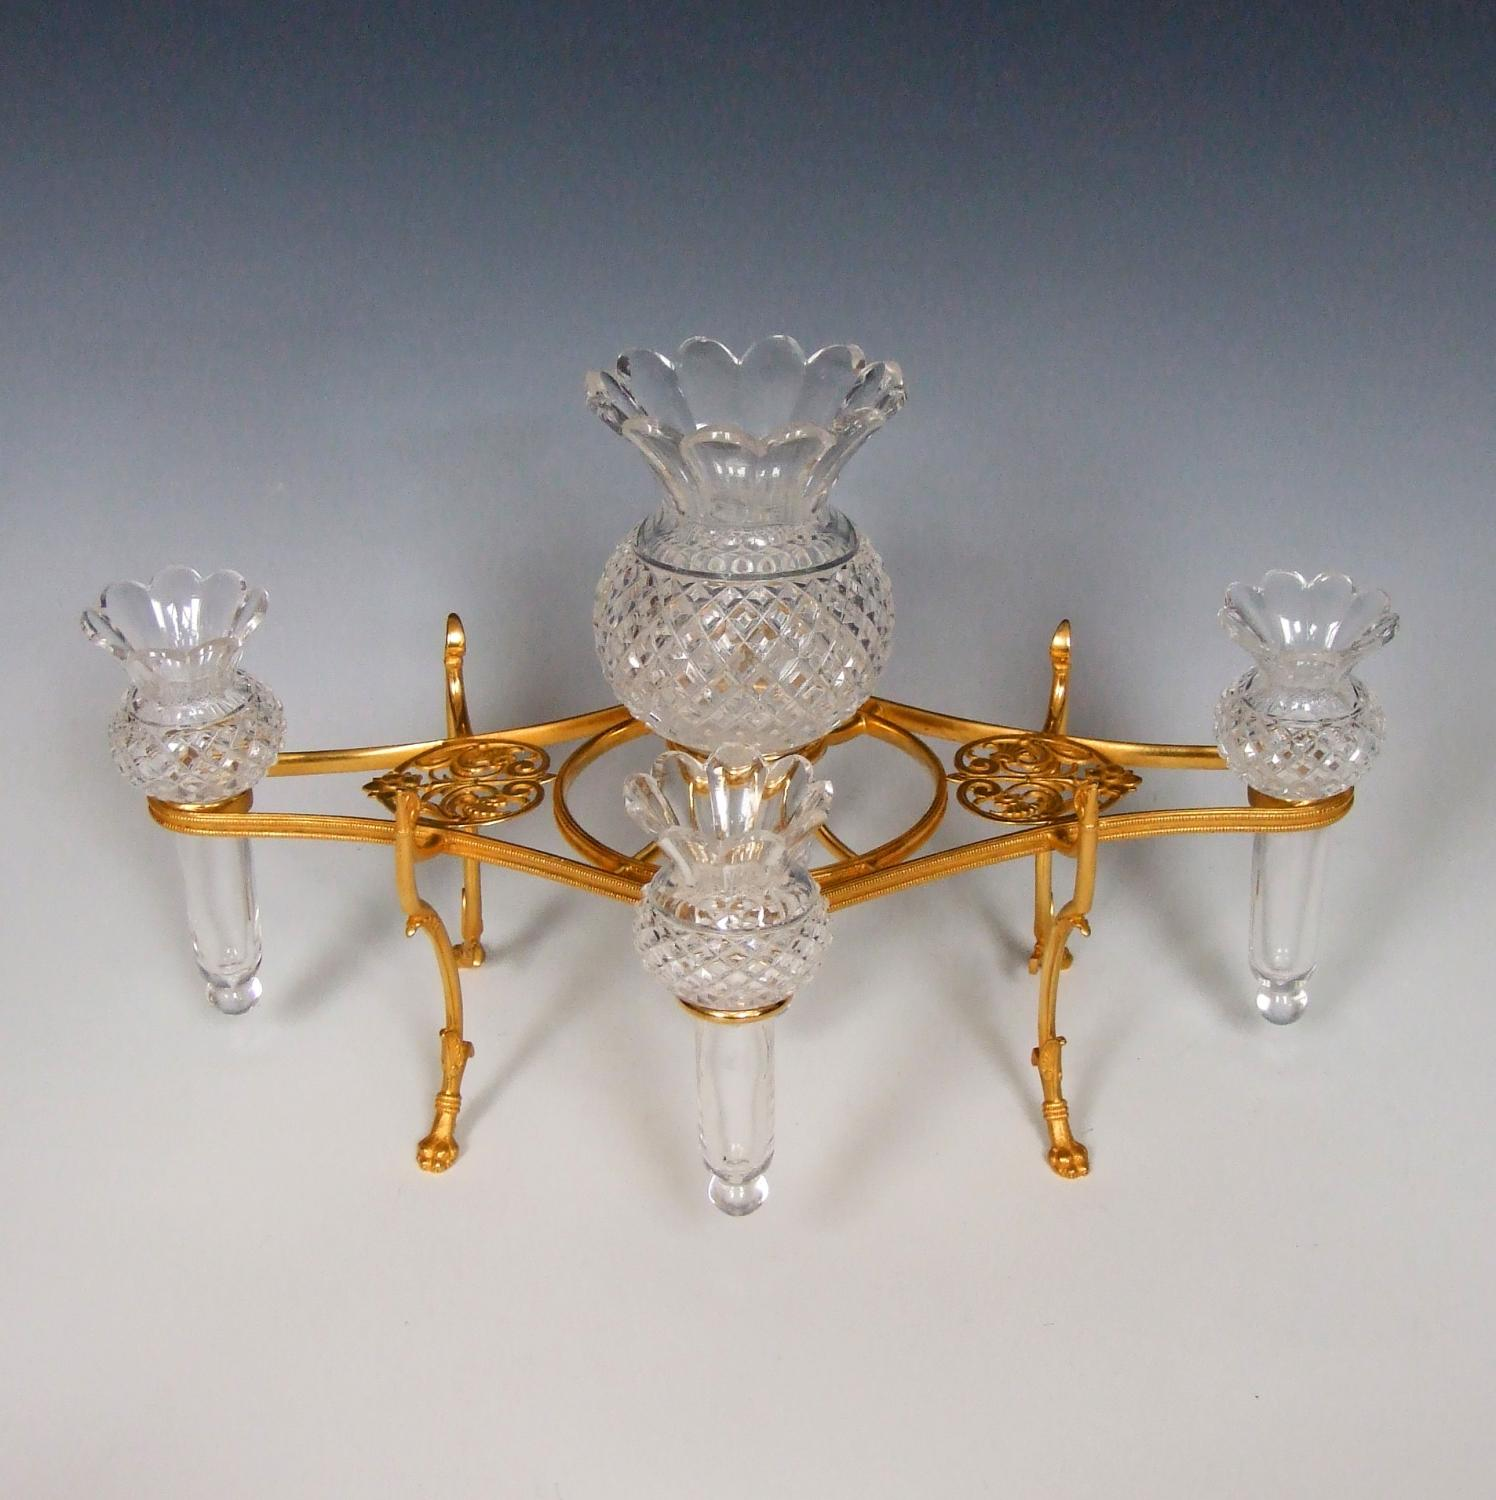 Fine Osler ormolu and cut crystal epergne